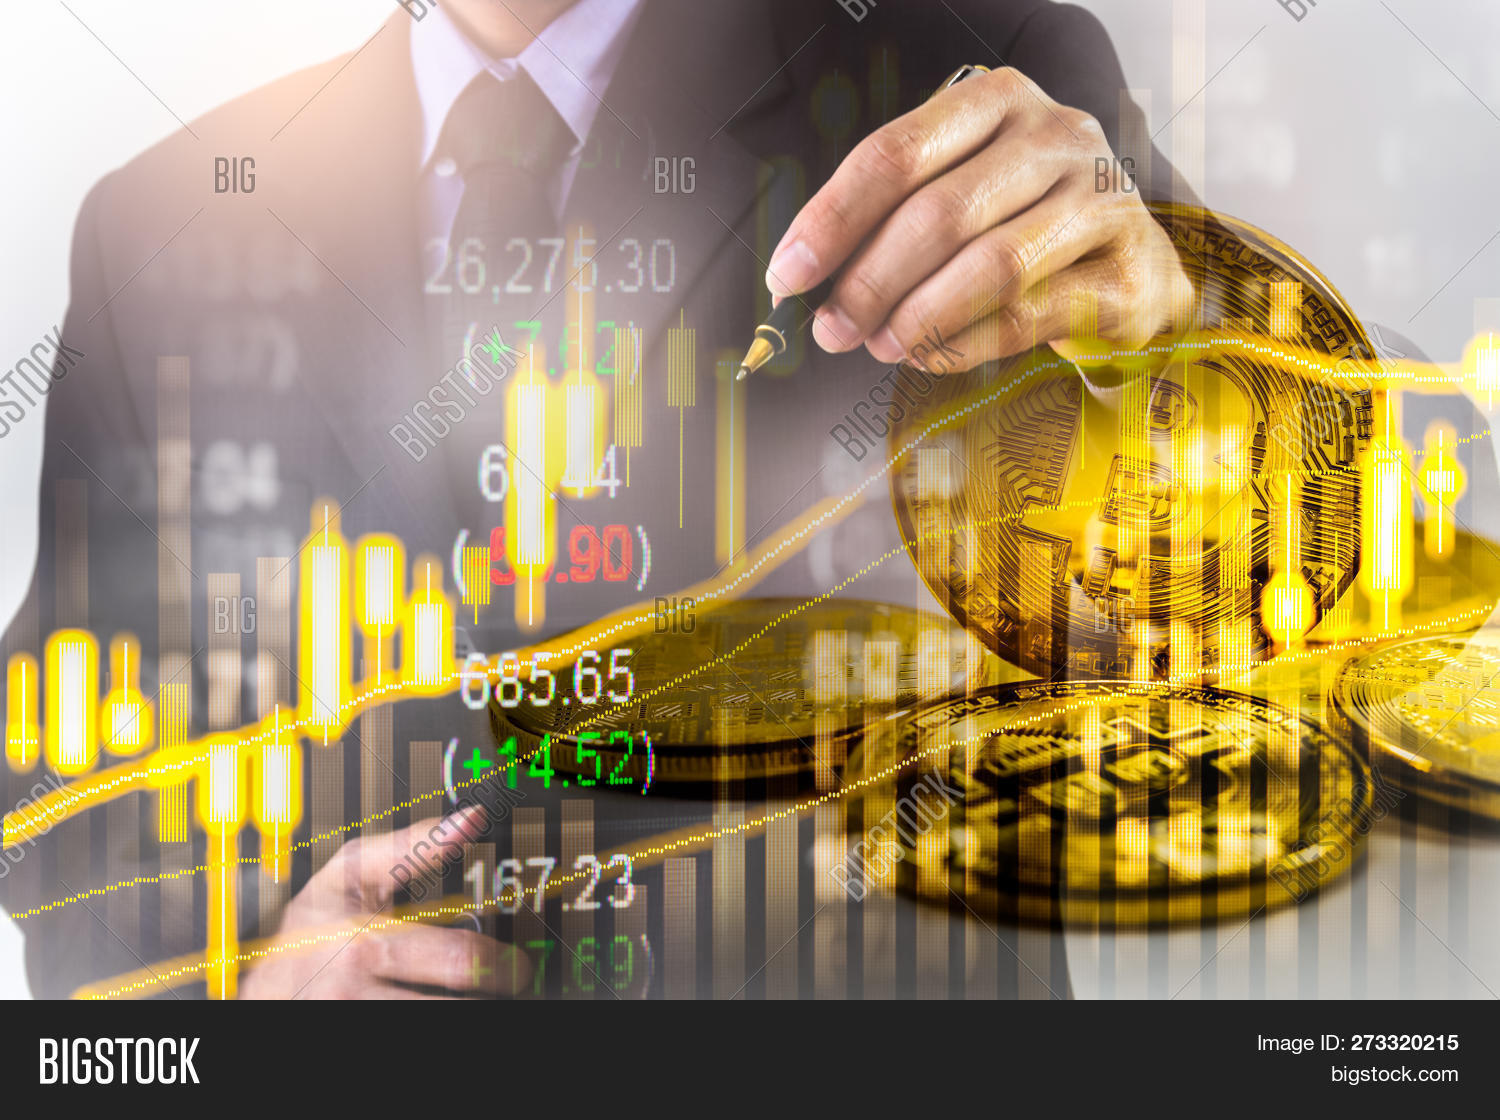 Bitcoin Business  Image & Photo (Free Trial) | Bigstock